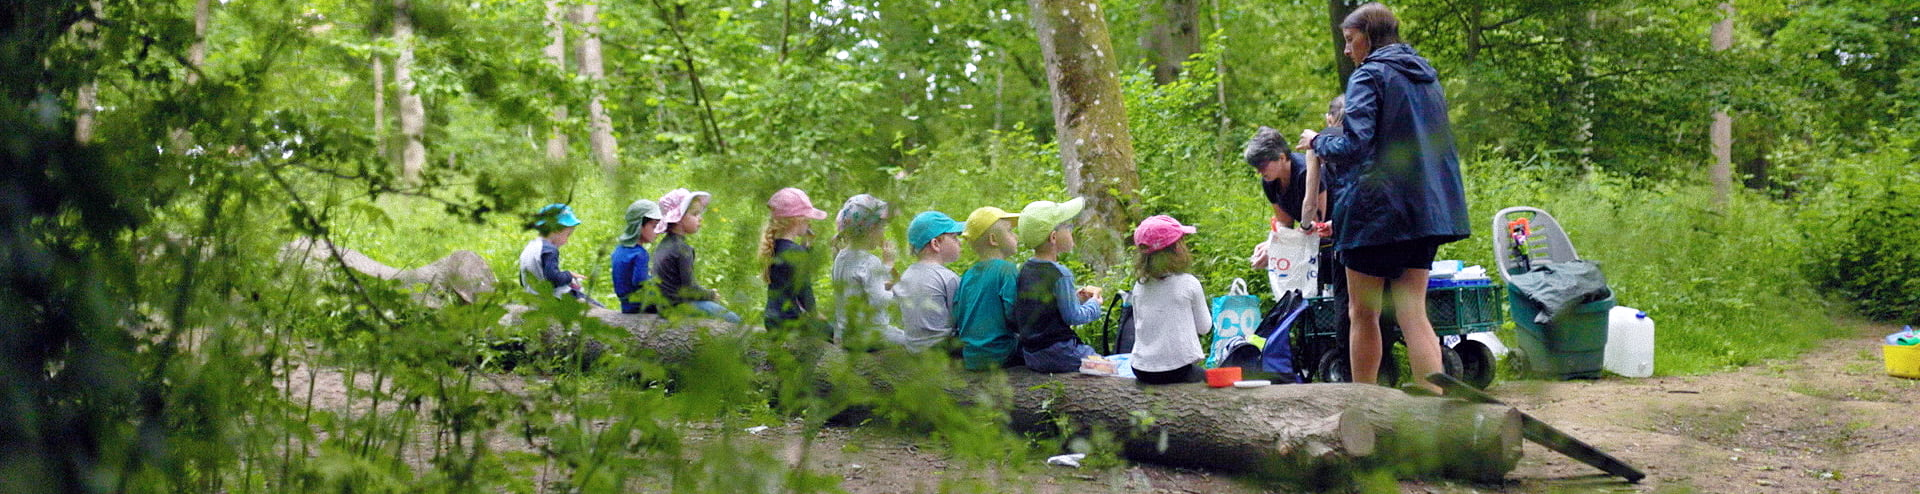 Jigsaw children in local woodland for Woodlands Explorers